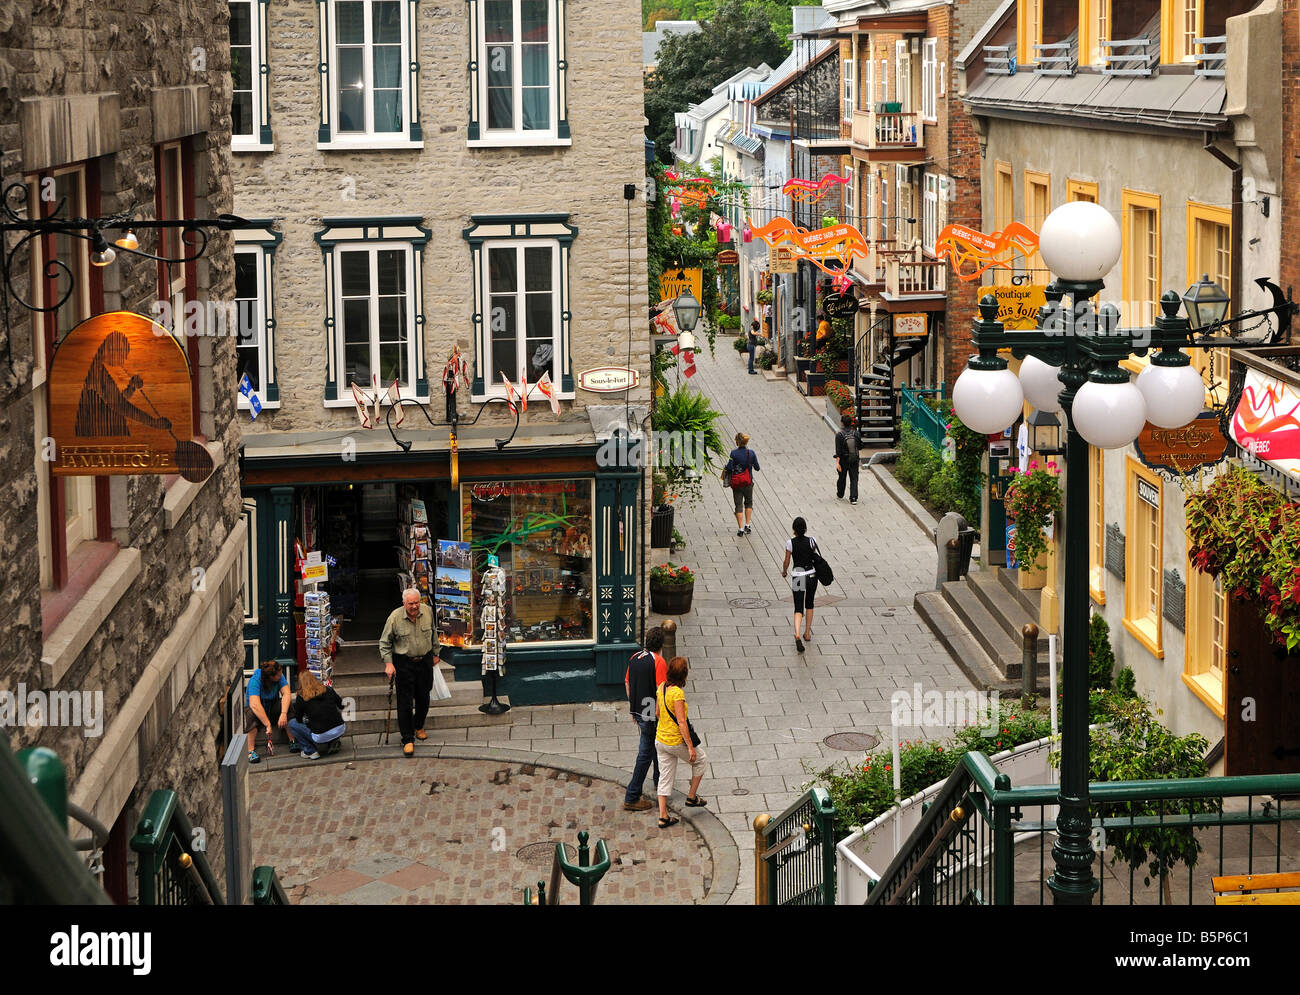 In the Rue du Petit Champlain in the Old Town of Quebec, Canada - Stock Image